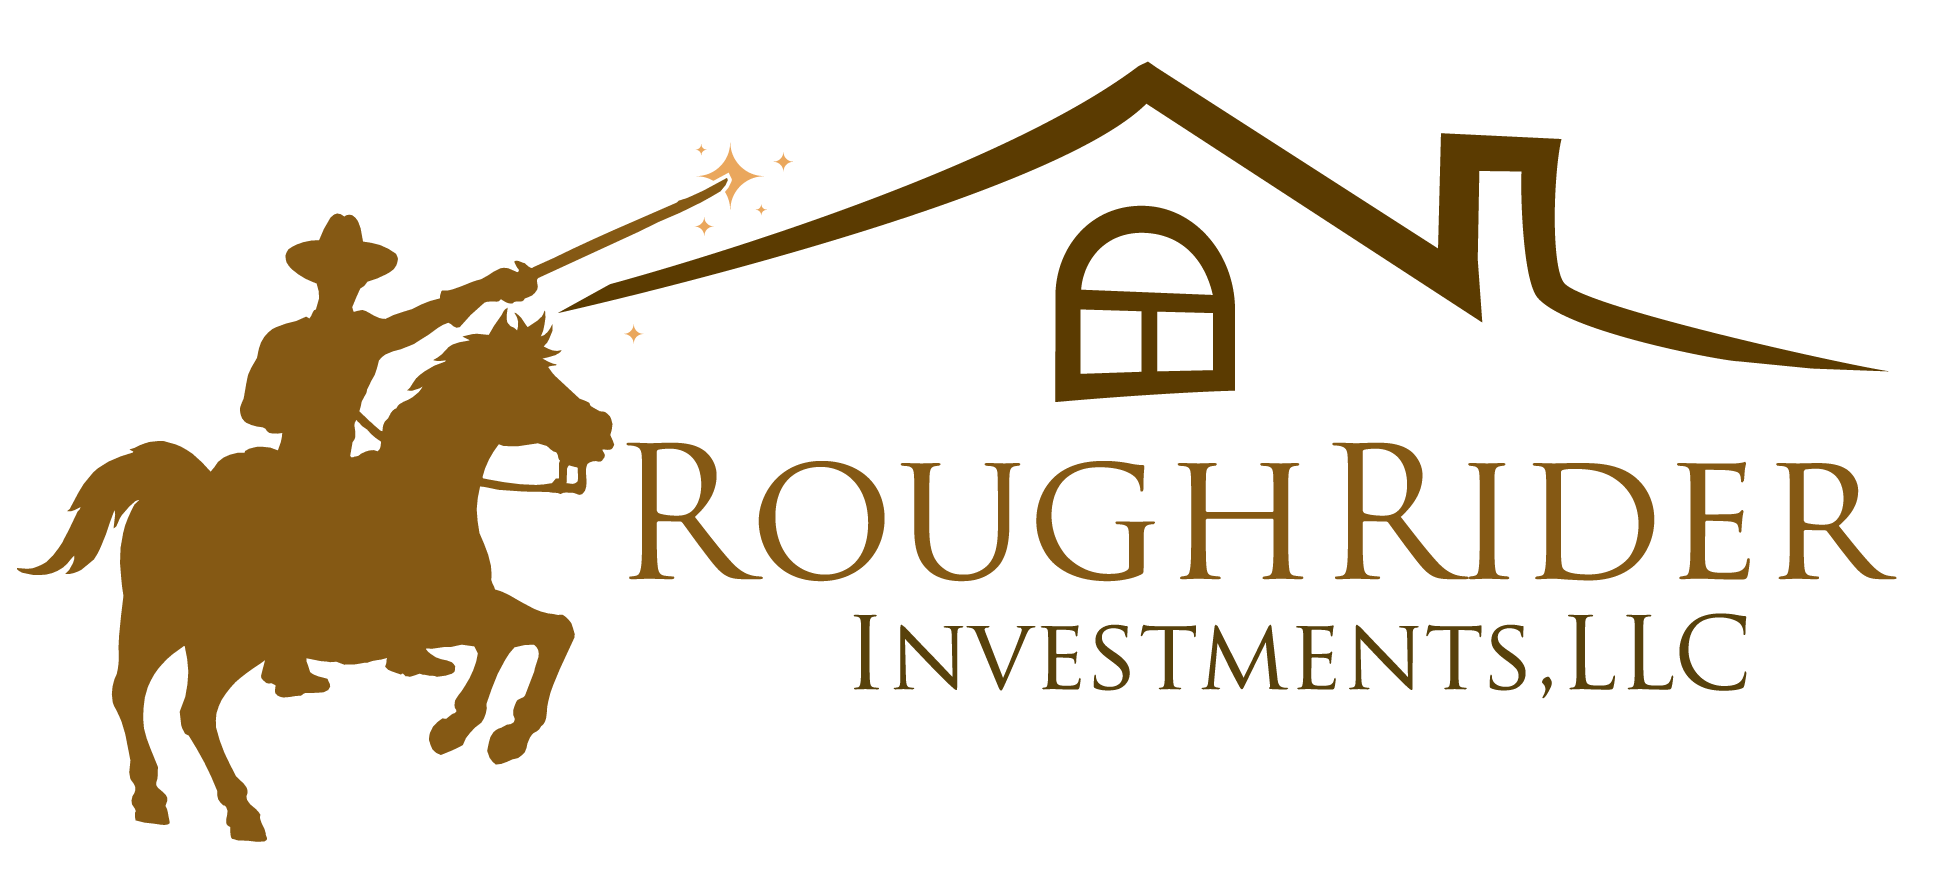 Rough Rider Investments, LLC